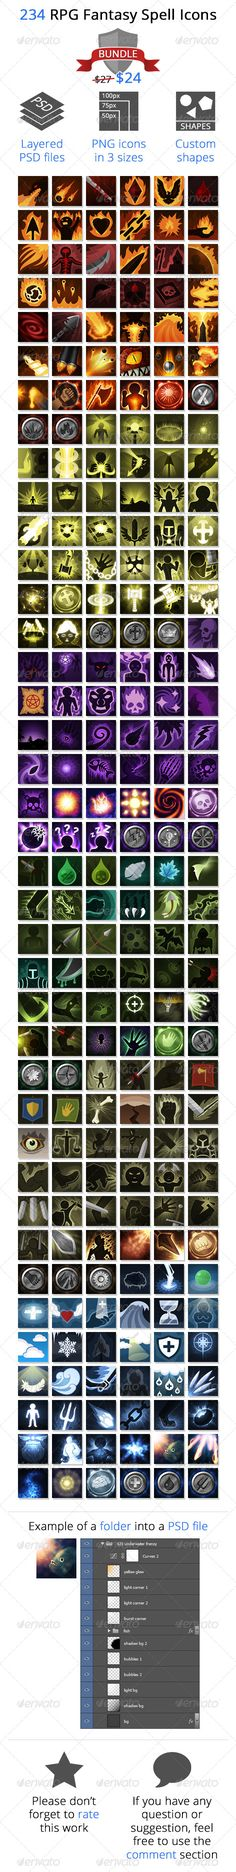 234 RPG Fantasy Spells Icons Bundle bundle, cast, characters, combat, elements, fantasy, fight, heroic, icon, magic, melee, mmo, mmorpg, power, rpg, scenes, skill, spell, 234 RPG Fantasy Spells Icons Bundle